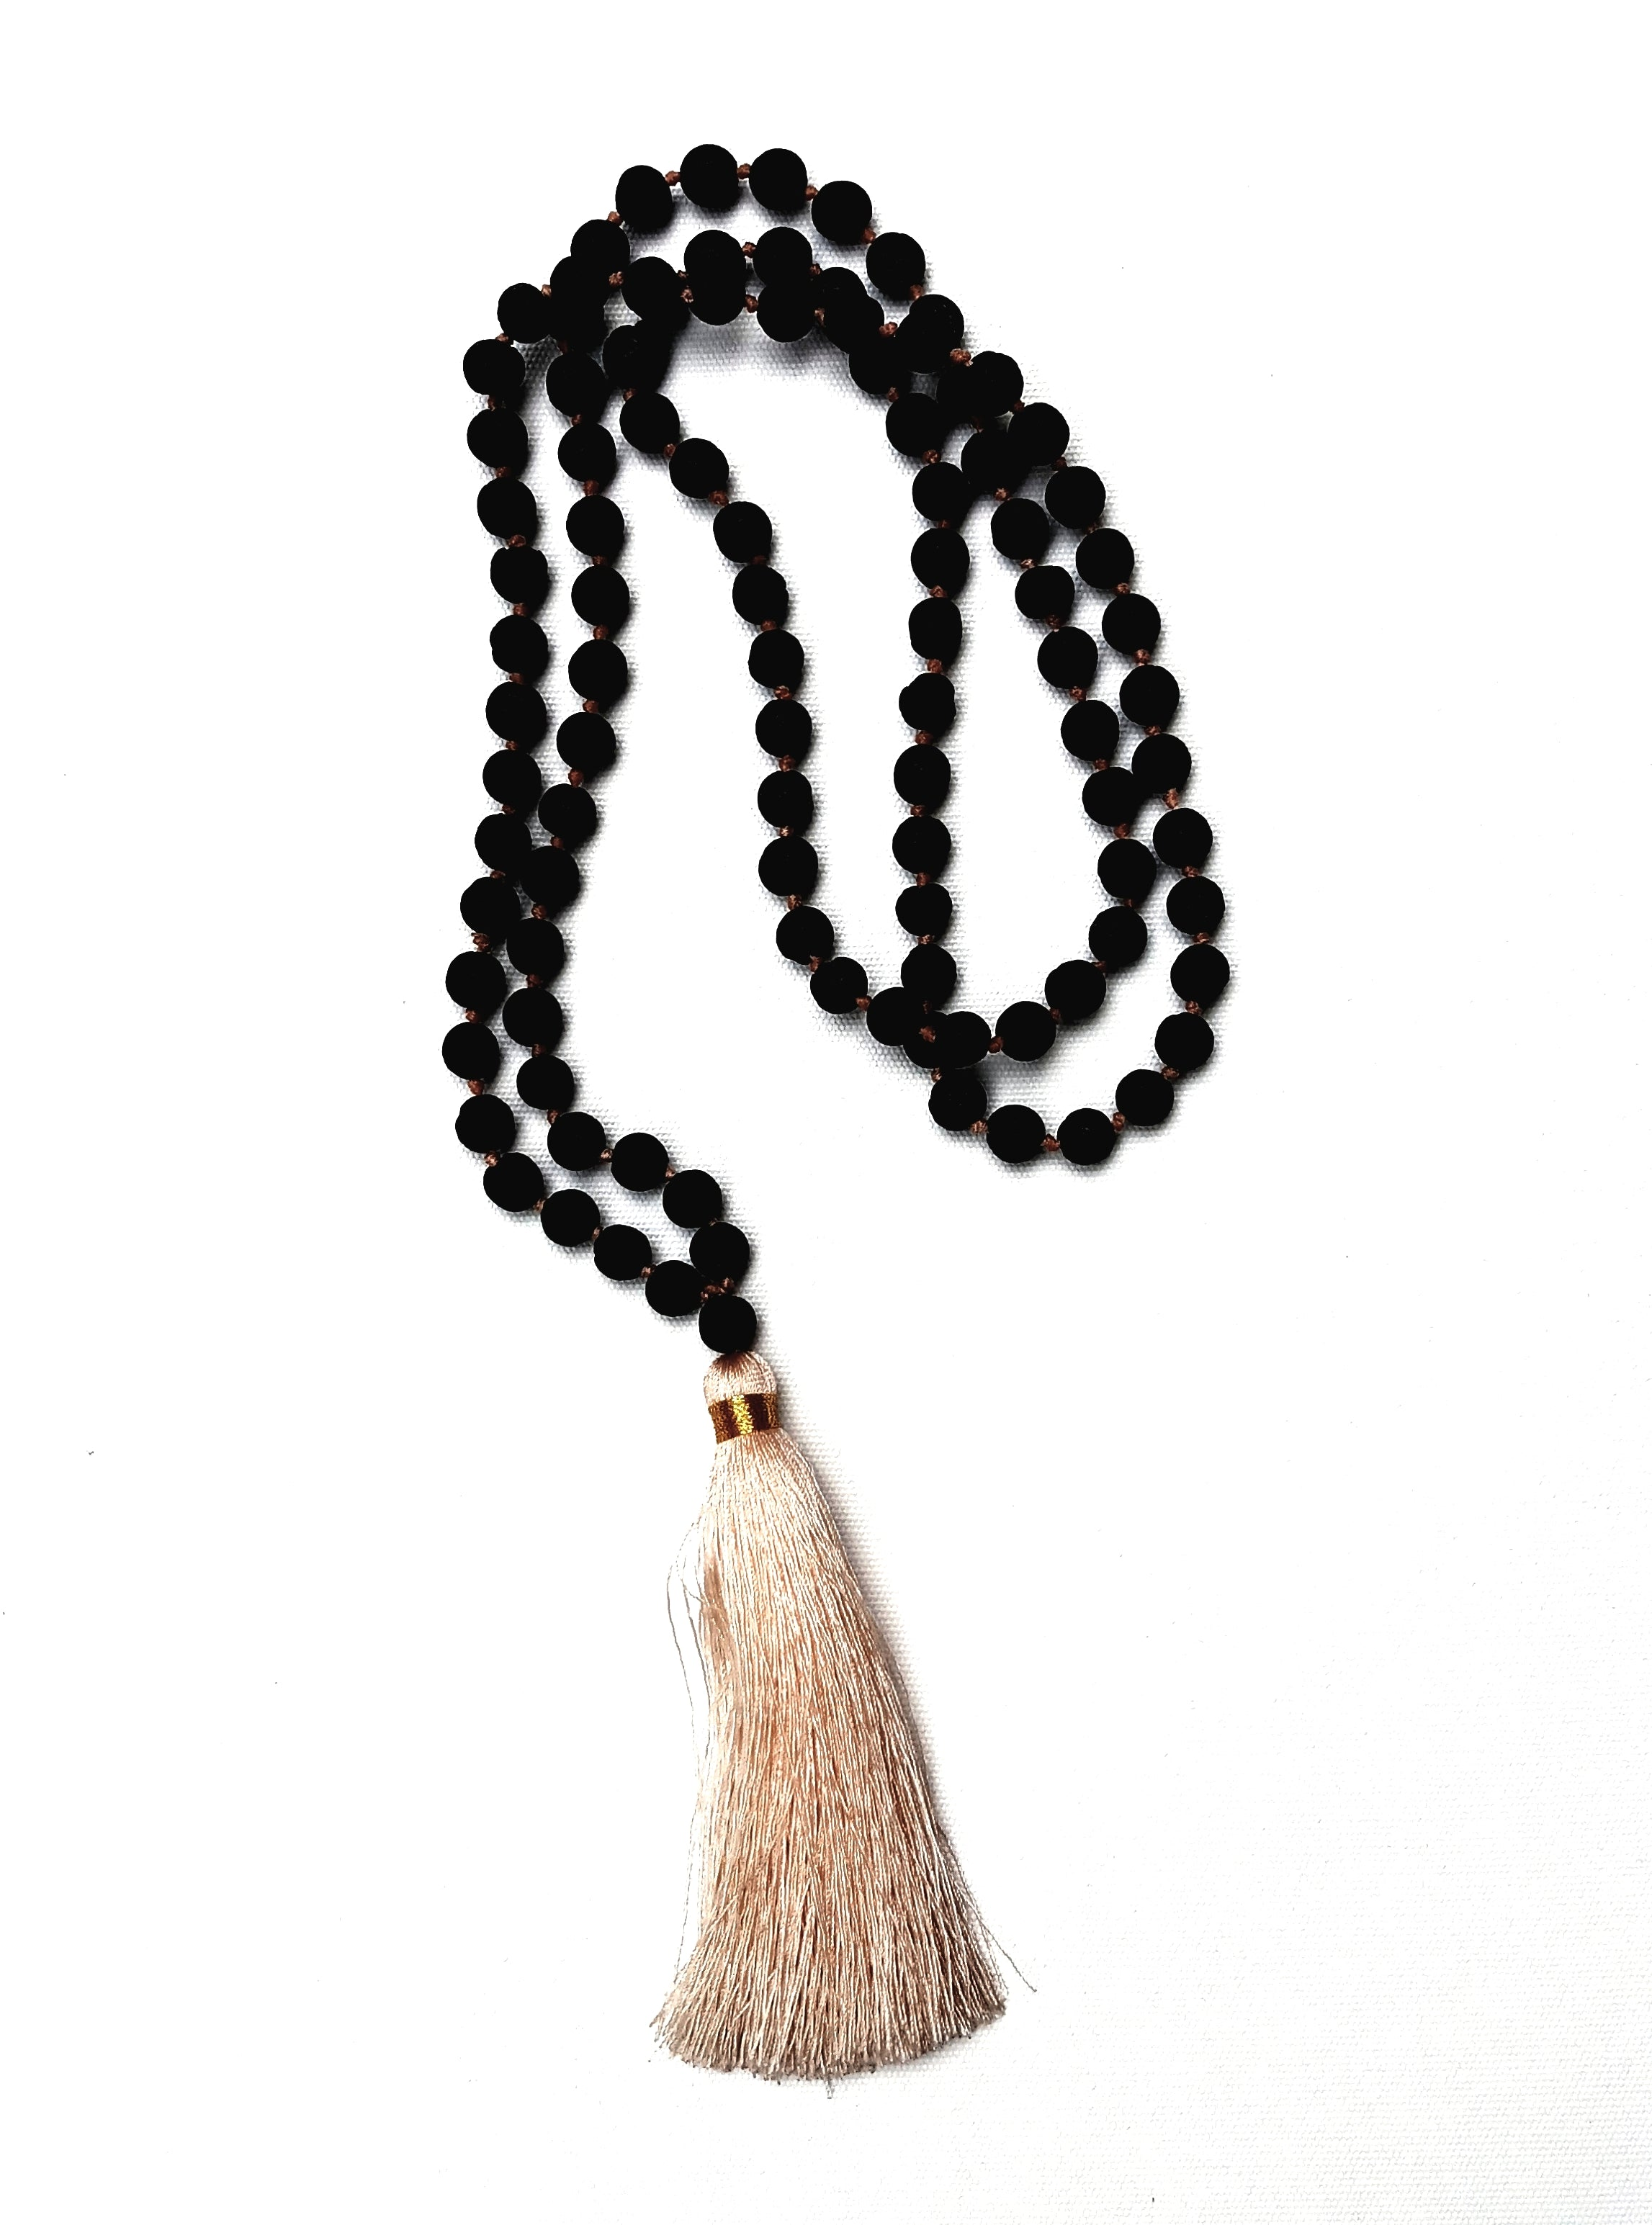 mala necklace yoga necklace meditation necklace made in bali